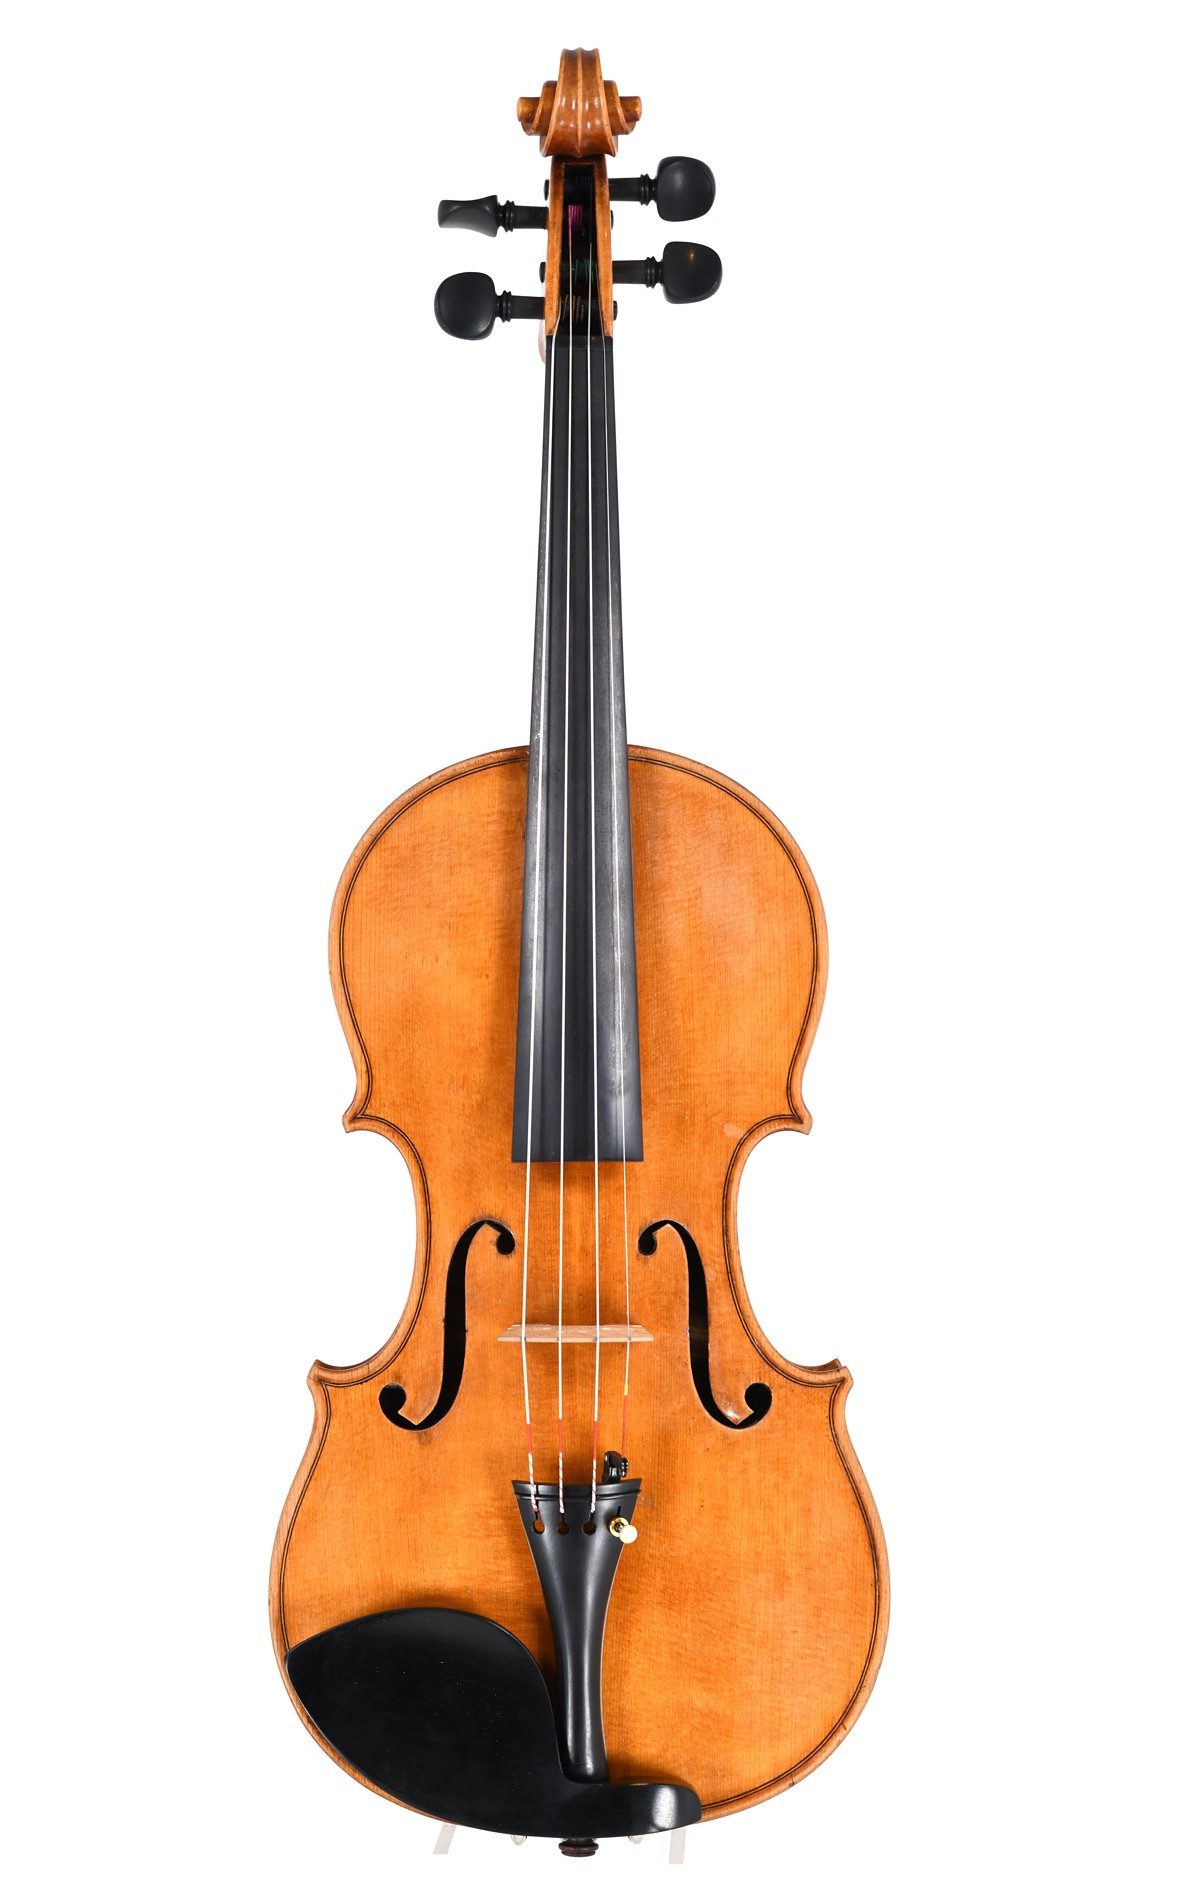 Violin from England, approx. 1950 - top